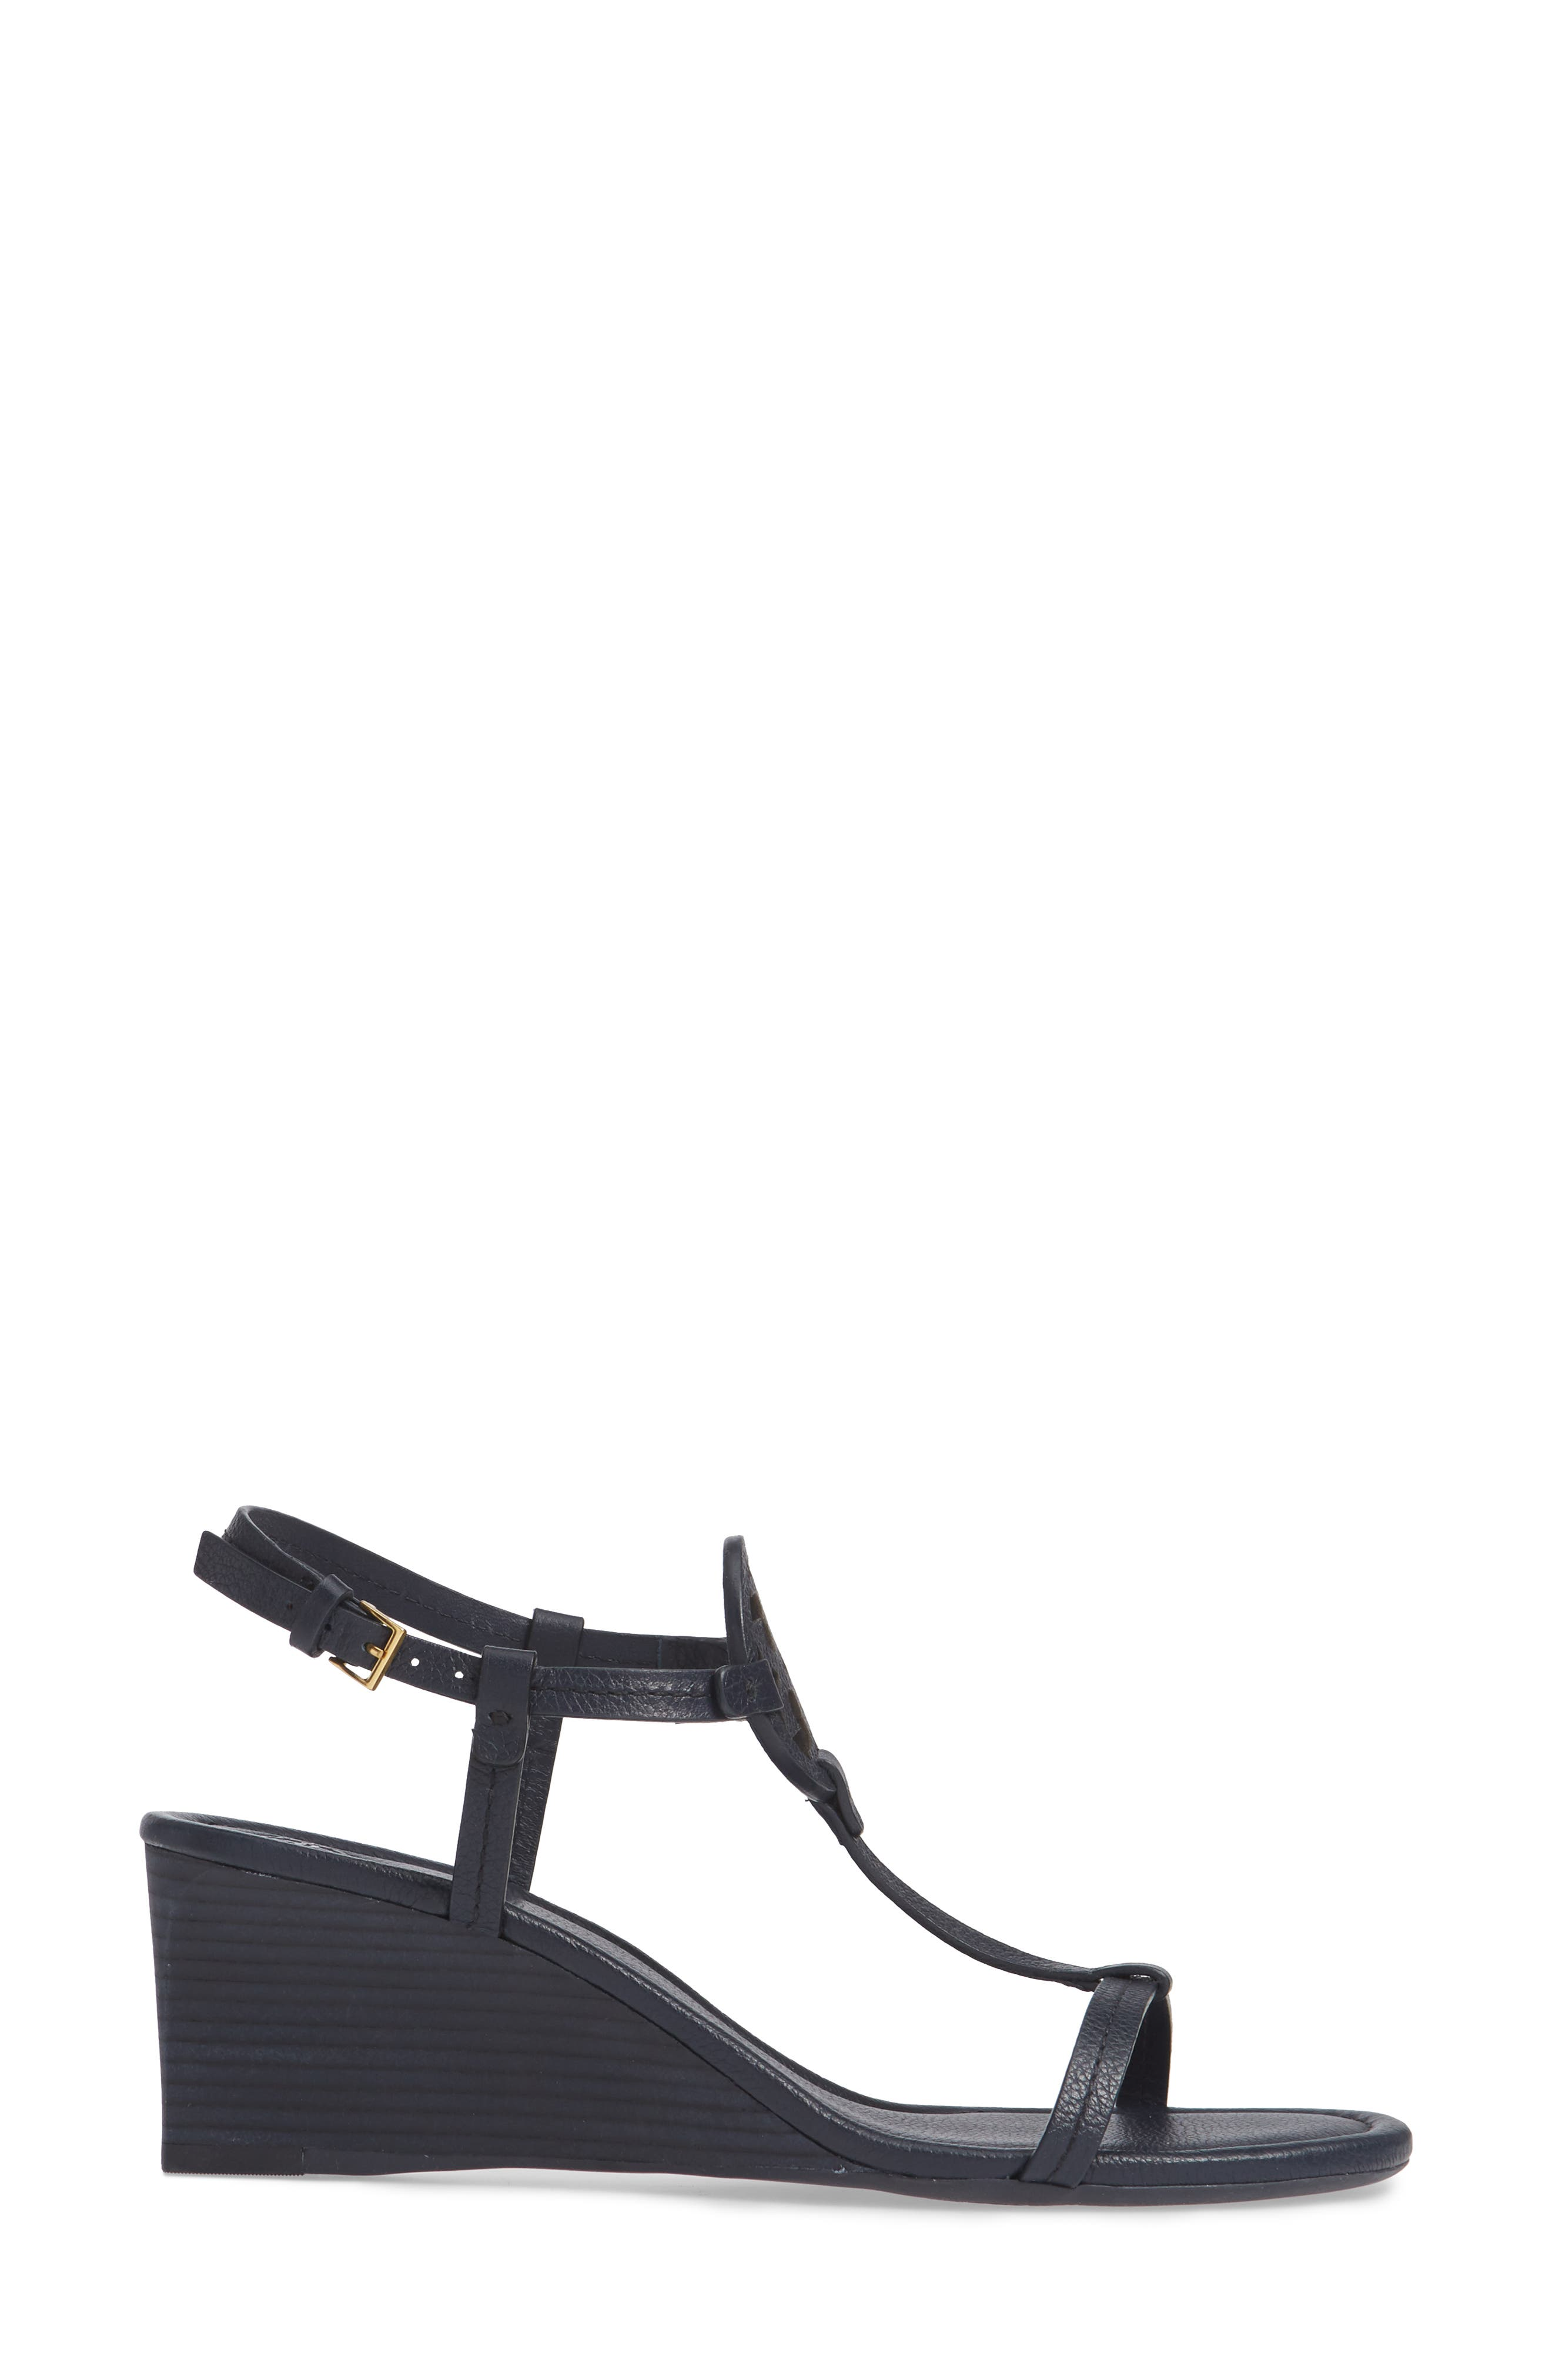 TORY BURCH, Miller Wedge Sandal, Alternate thumbnail 3, color, PERFECT NAVY